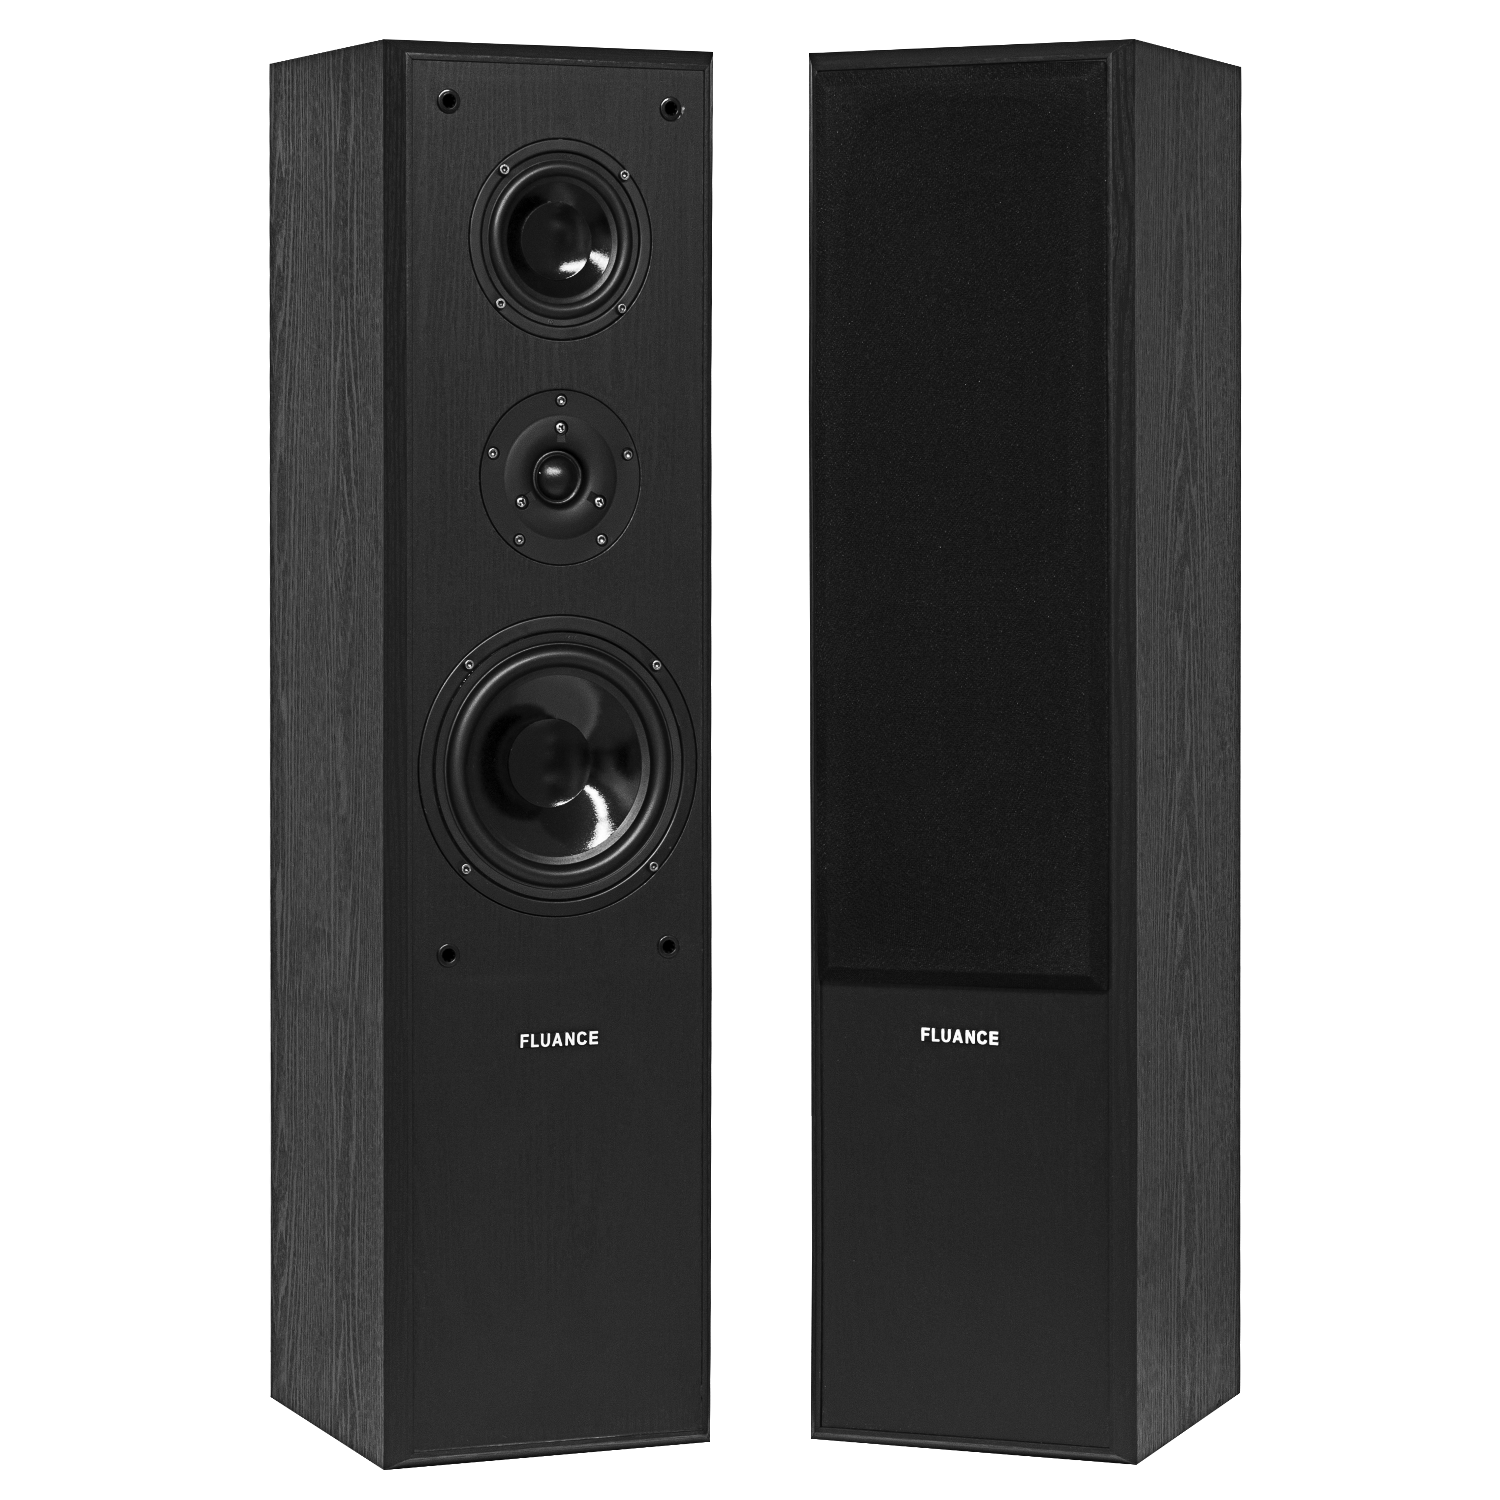 AVFR Dynamic Compact Three-way Hifi Speakers